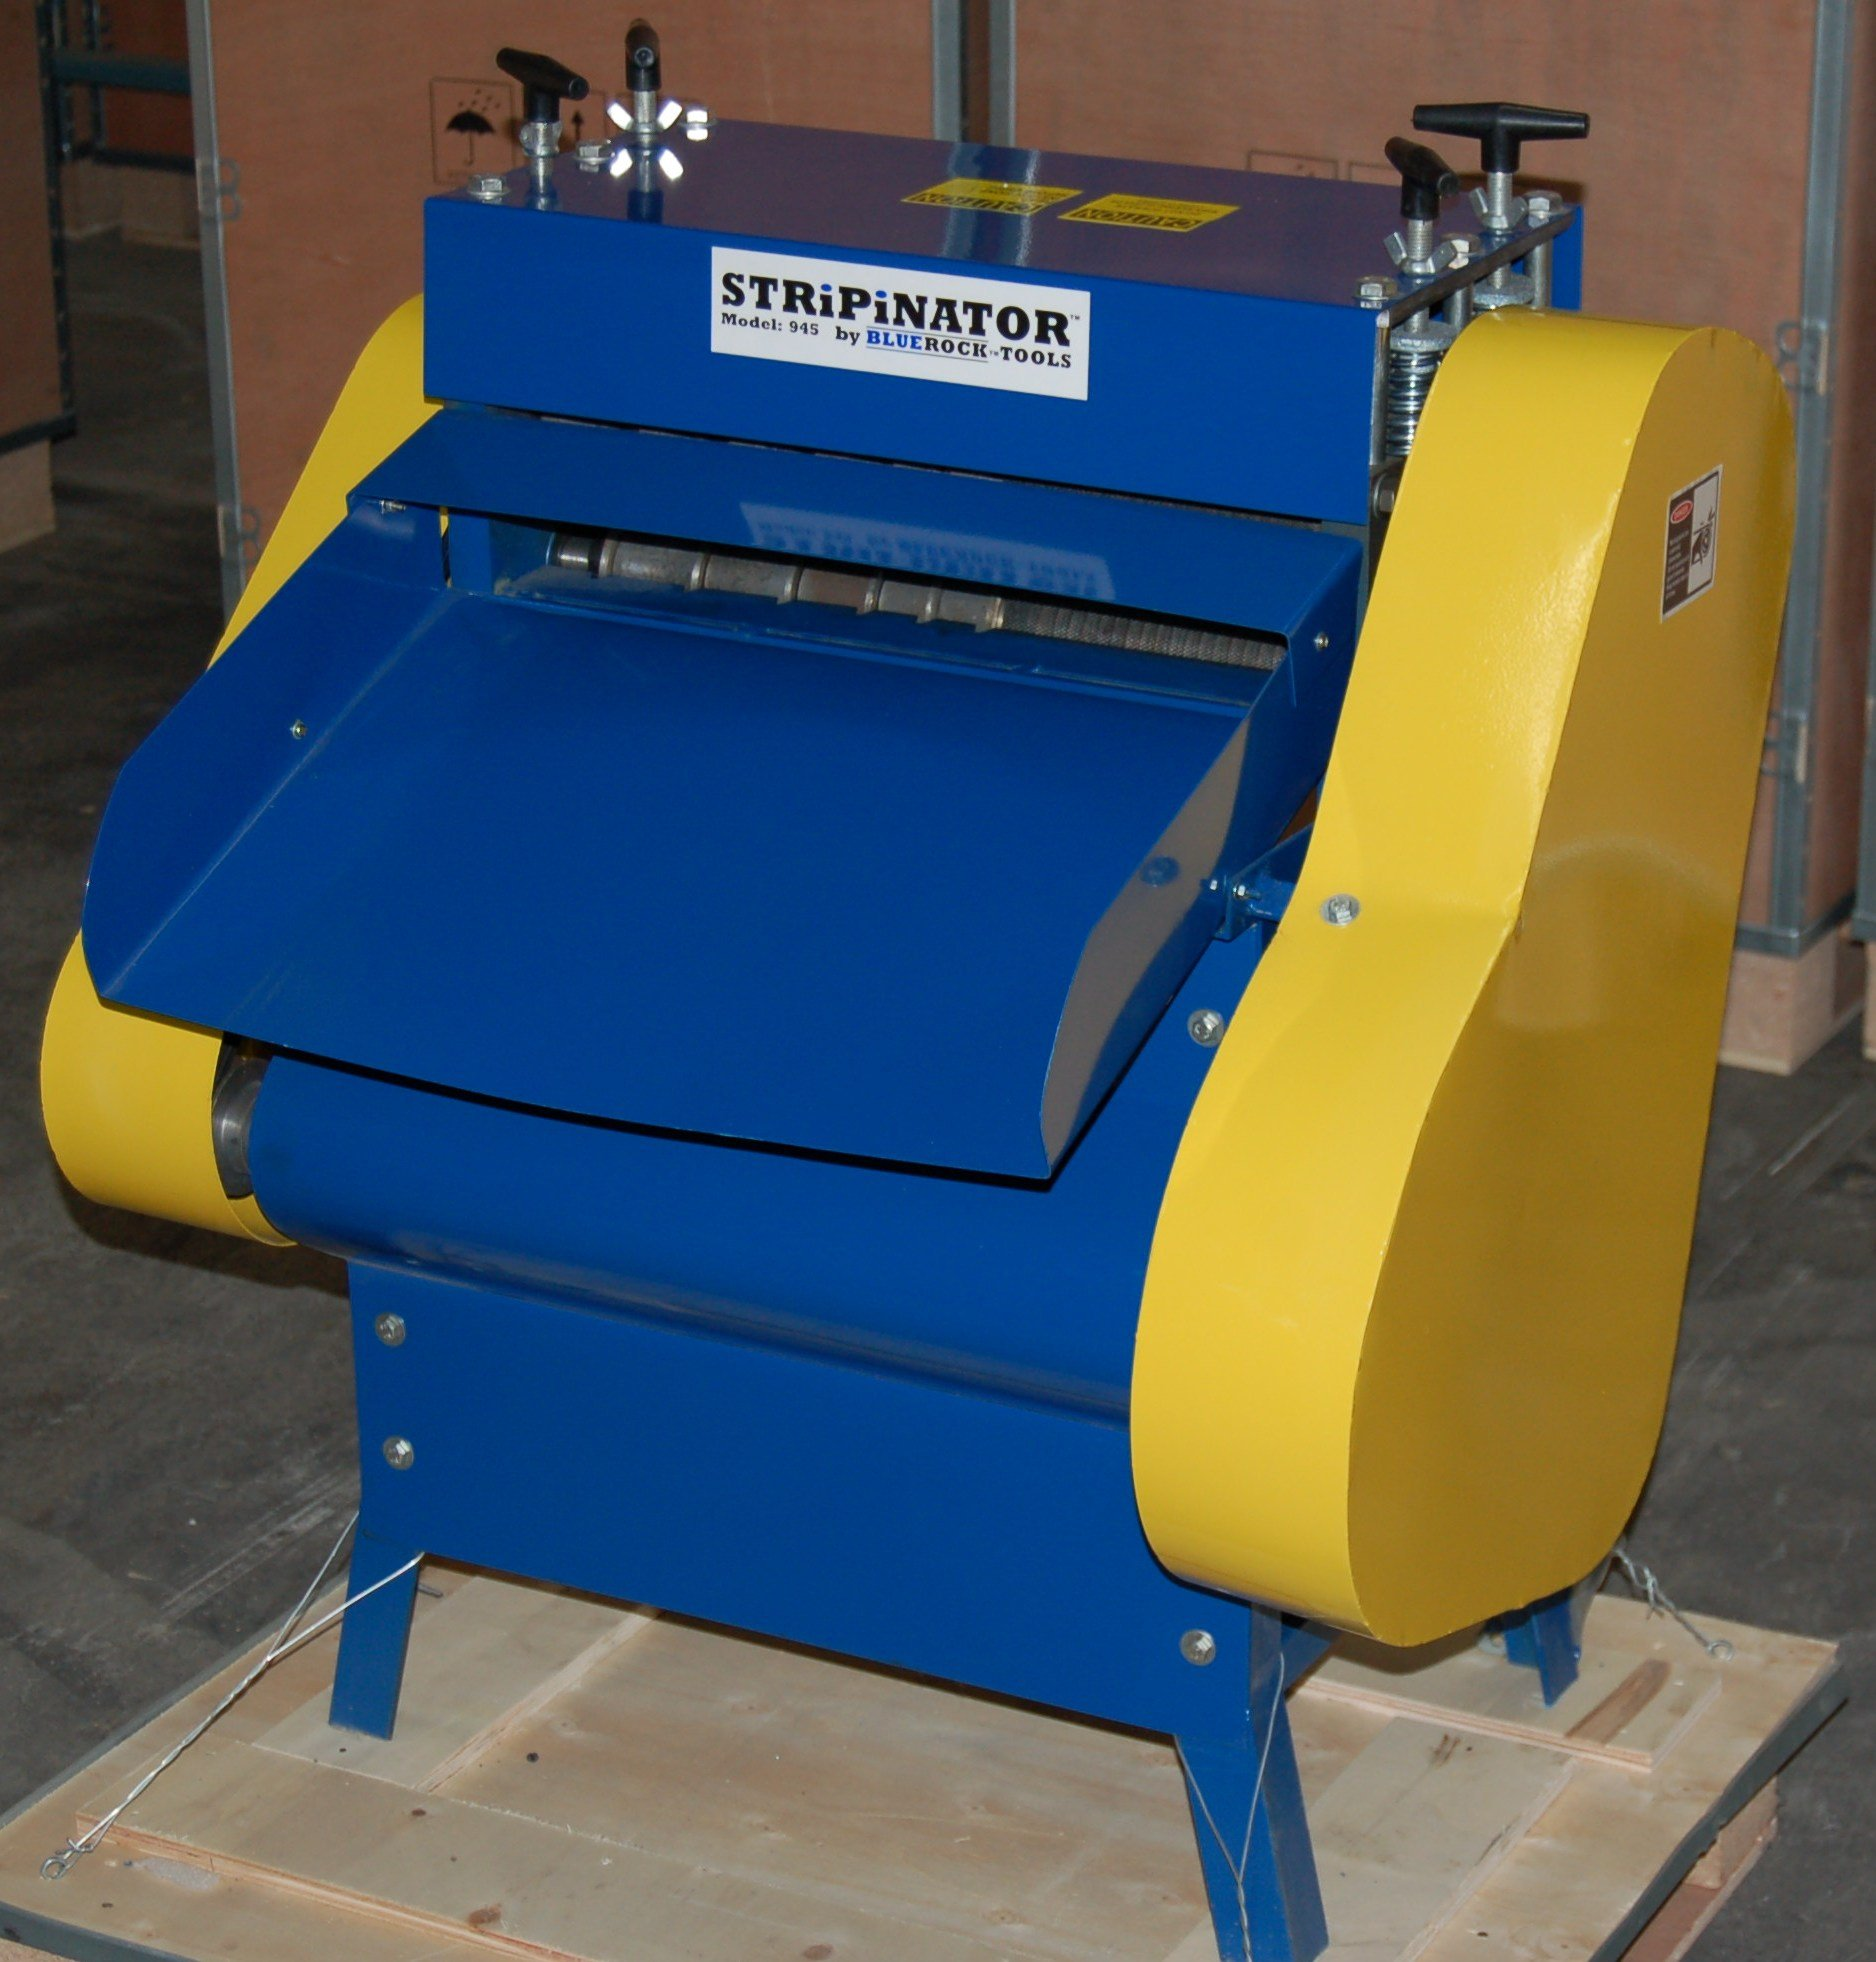 STRiPiNATOR Model 945 Wire Stripping Machine Scrap Copper Wire Recycler by ... by BLUEROCK (Image #1)